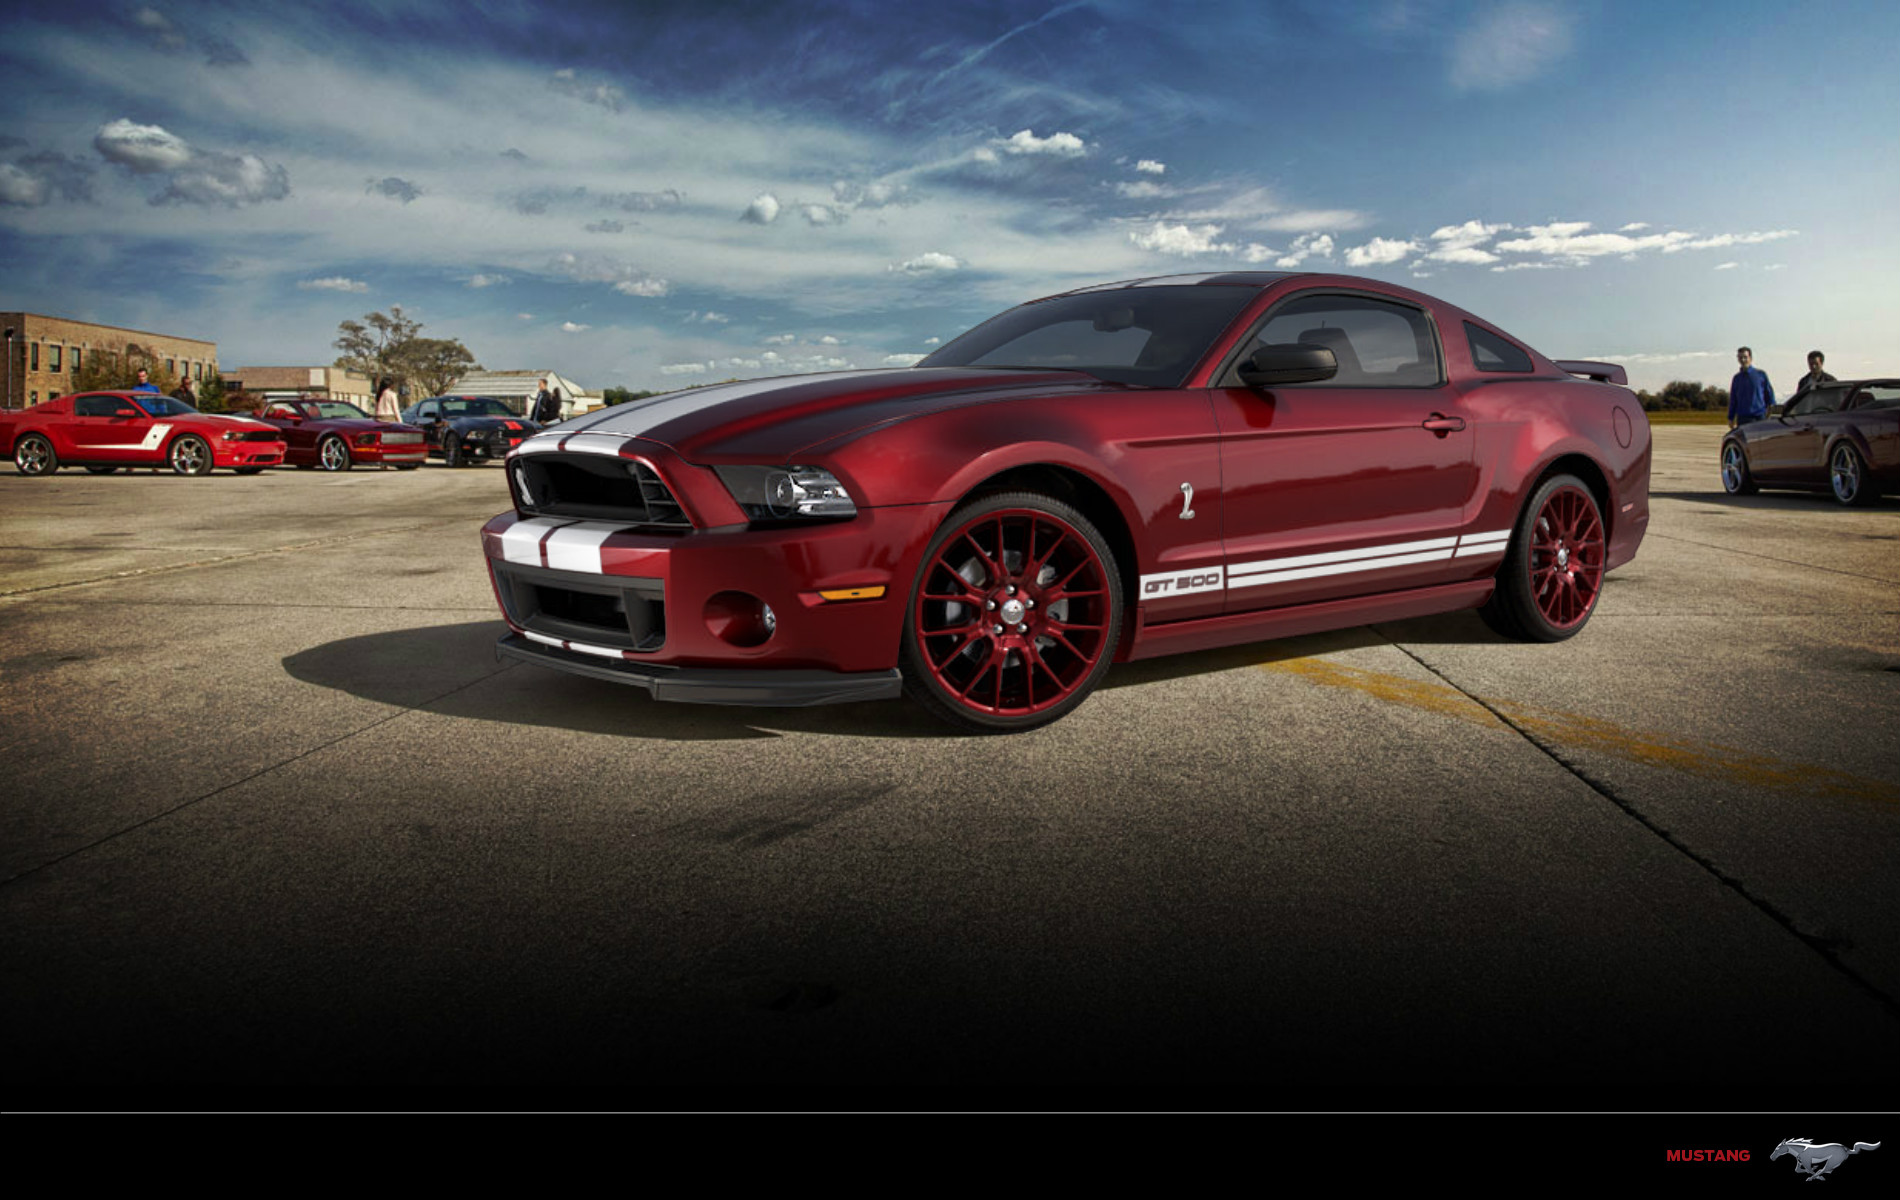 mustang customizer customize your own 2013 mustang sports car ford com autos post. Black Bedroom Furniture Sets. Home Design Ideas